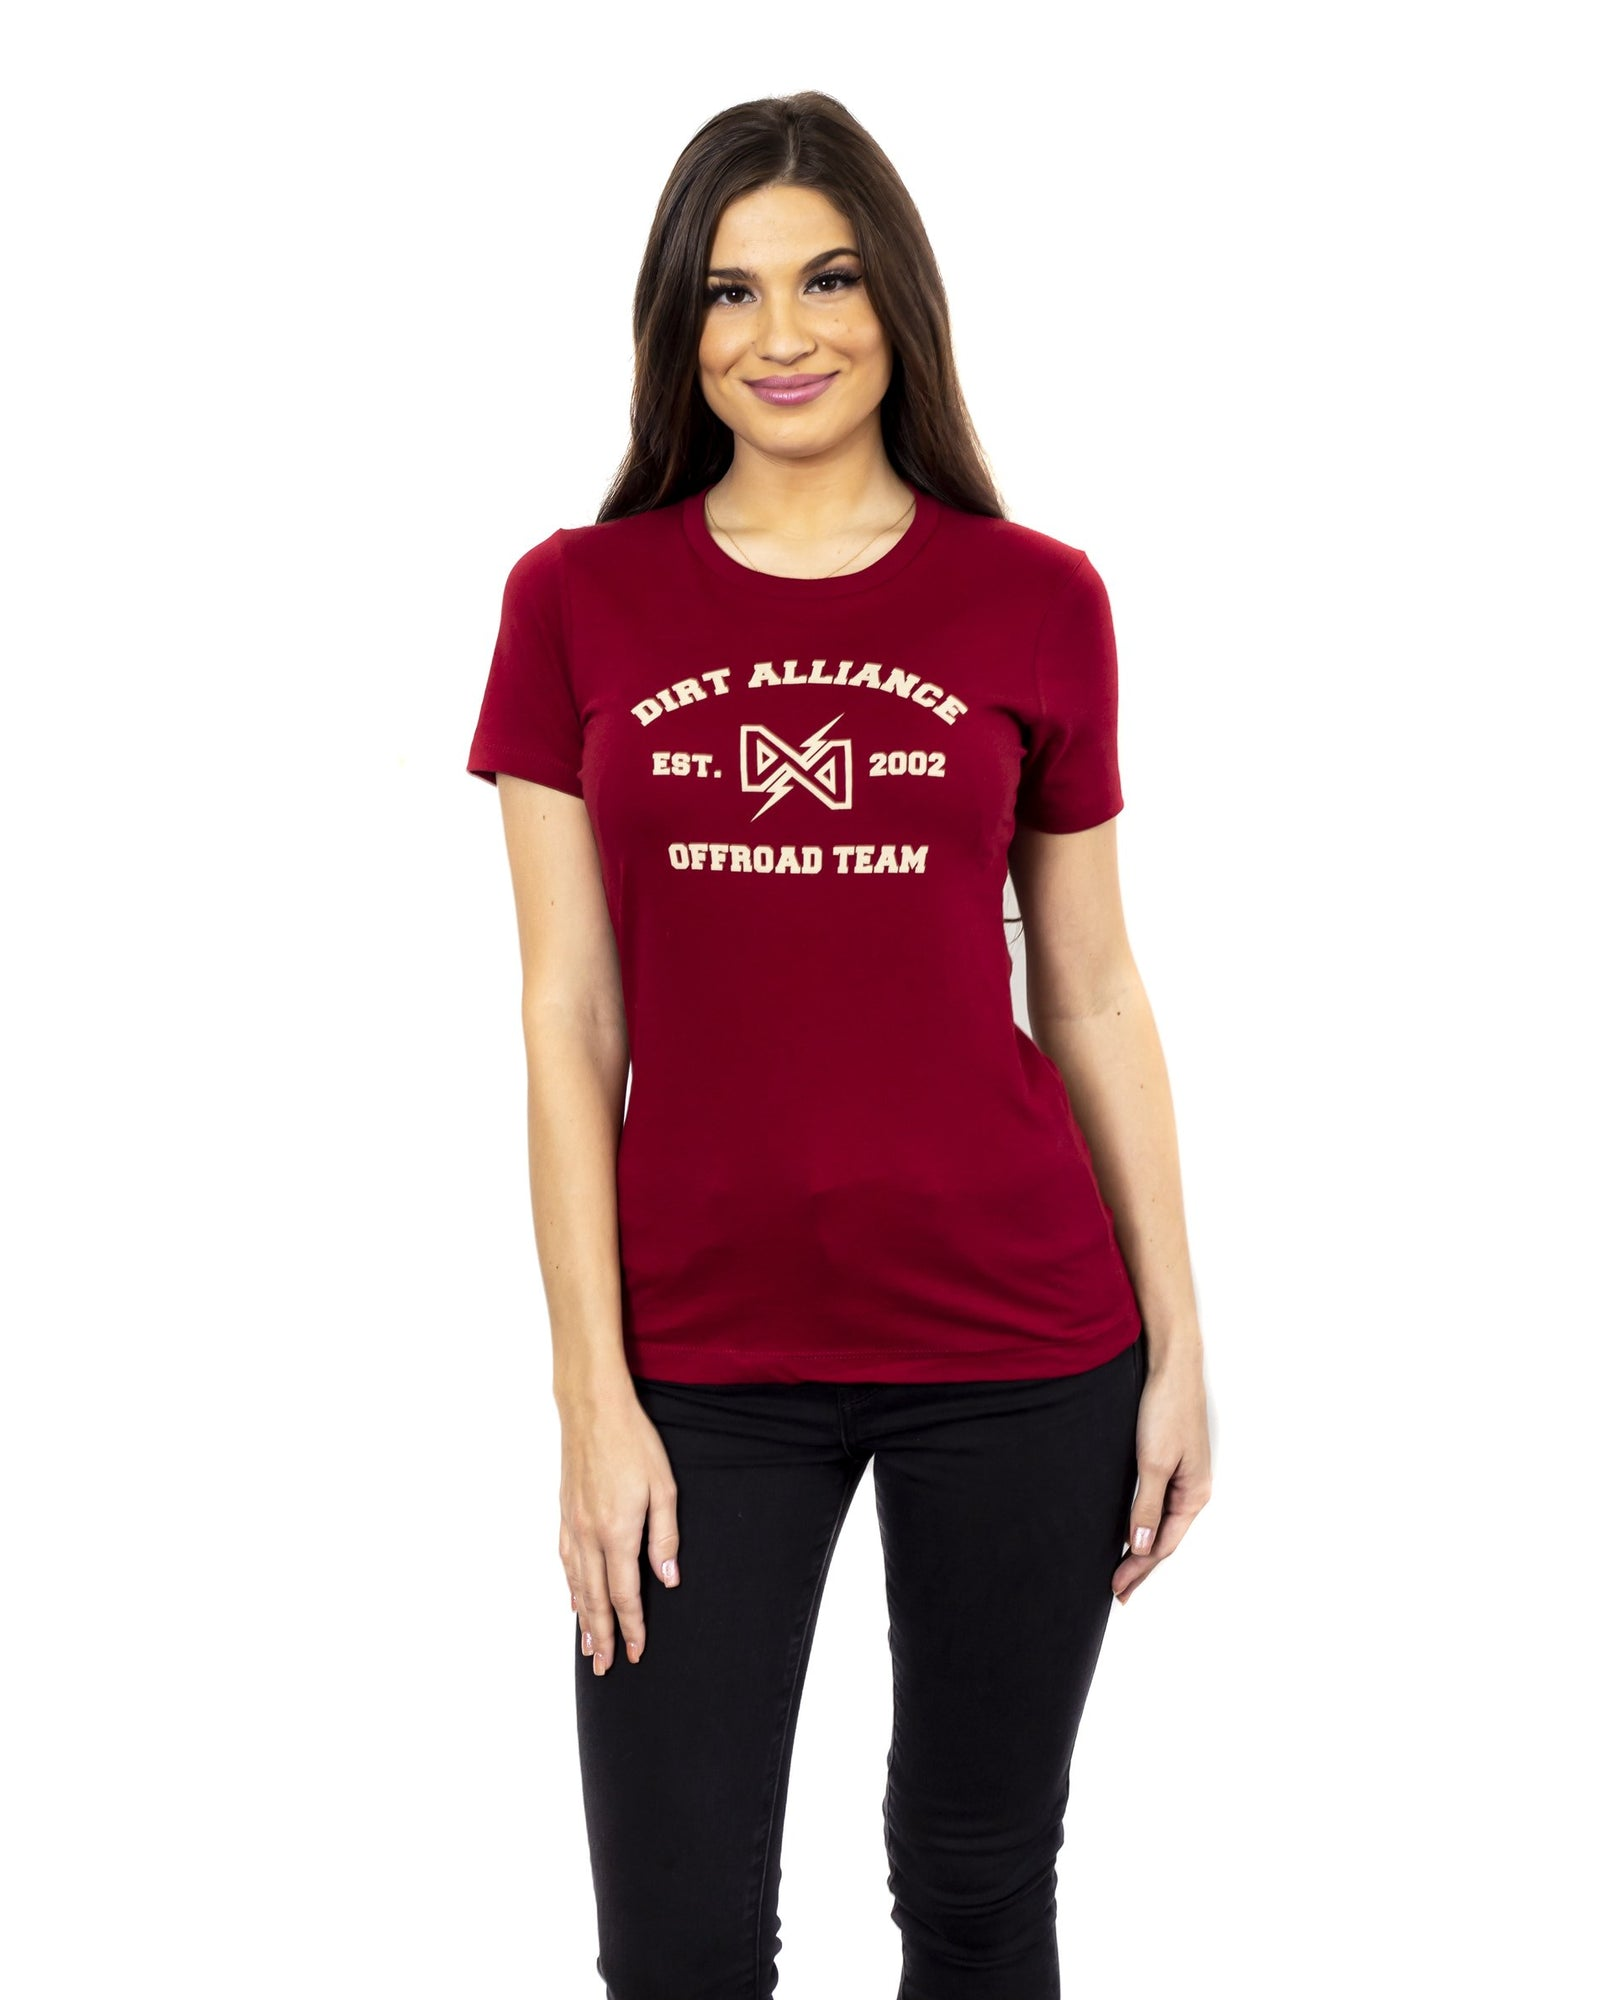 Dirt Alliance Unified Women's T-Shirt - Scarlet Red